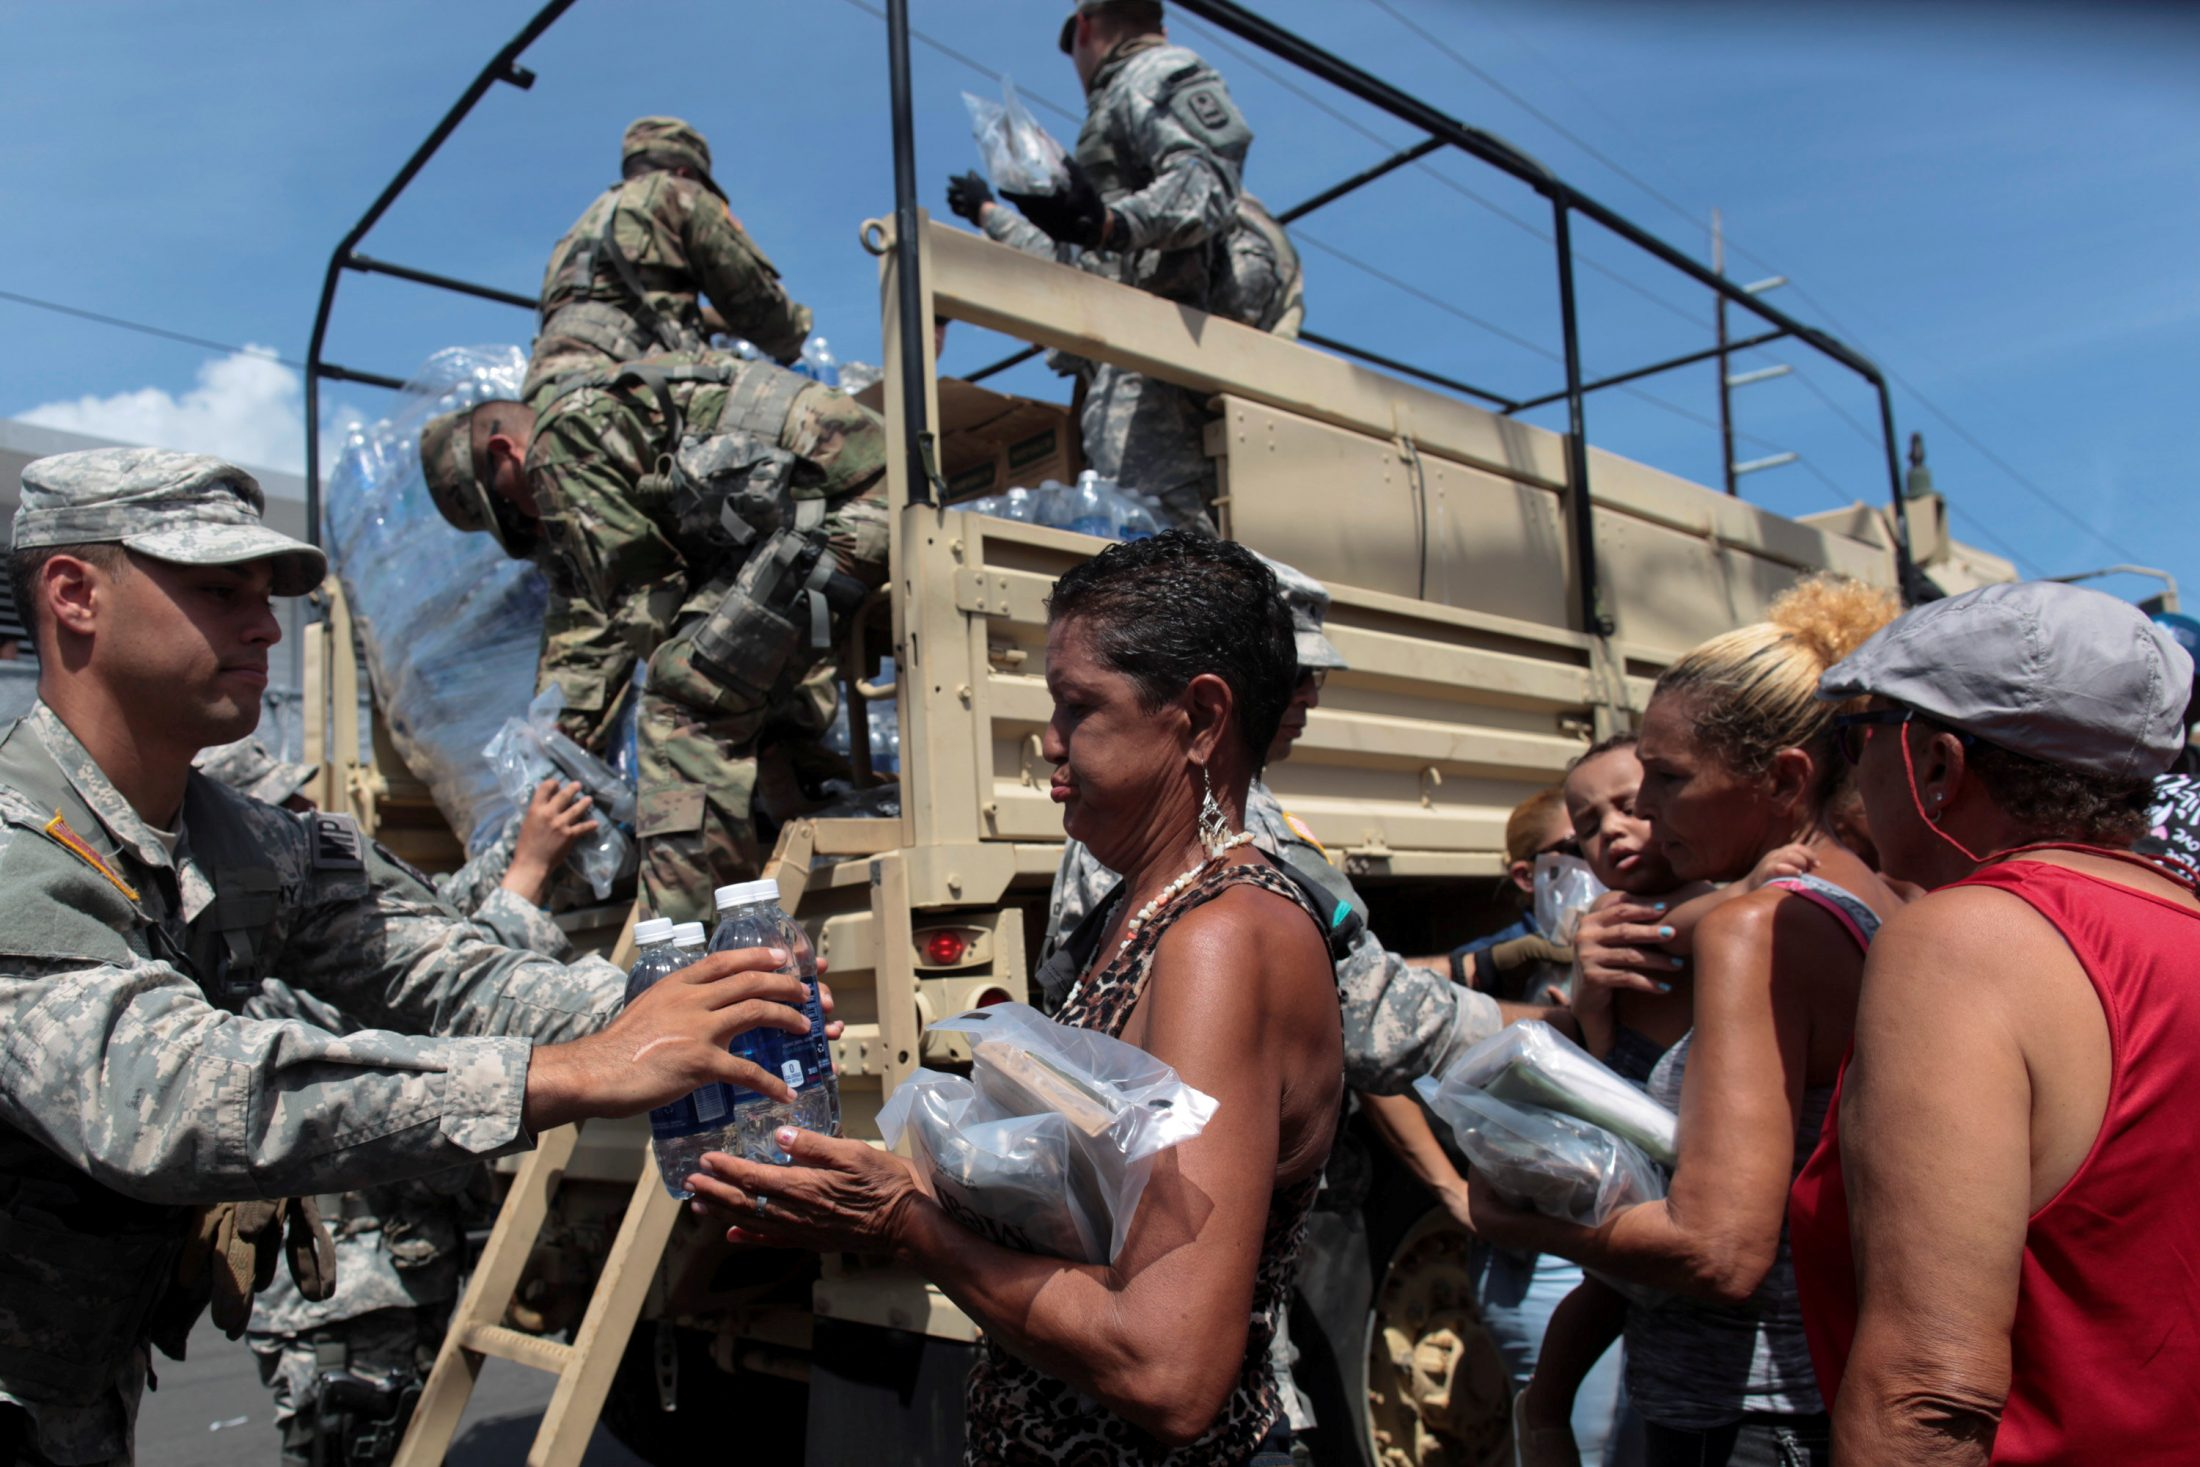 Soldiers of Puerto Rico's national guard distribute relief items to people, after the area was hit by Hurricane Maria in San Juan, Puerto Rico. Photo by Alvin Baez/Reuters